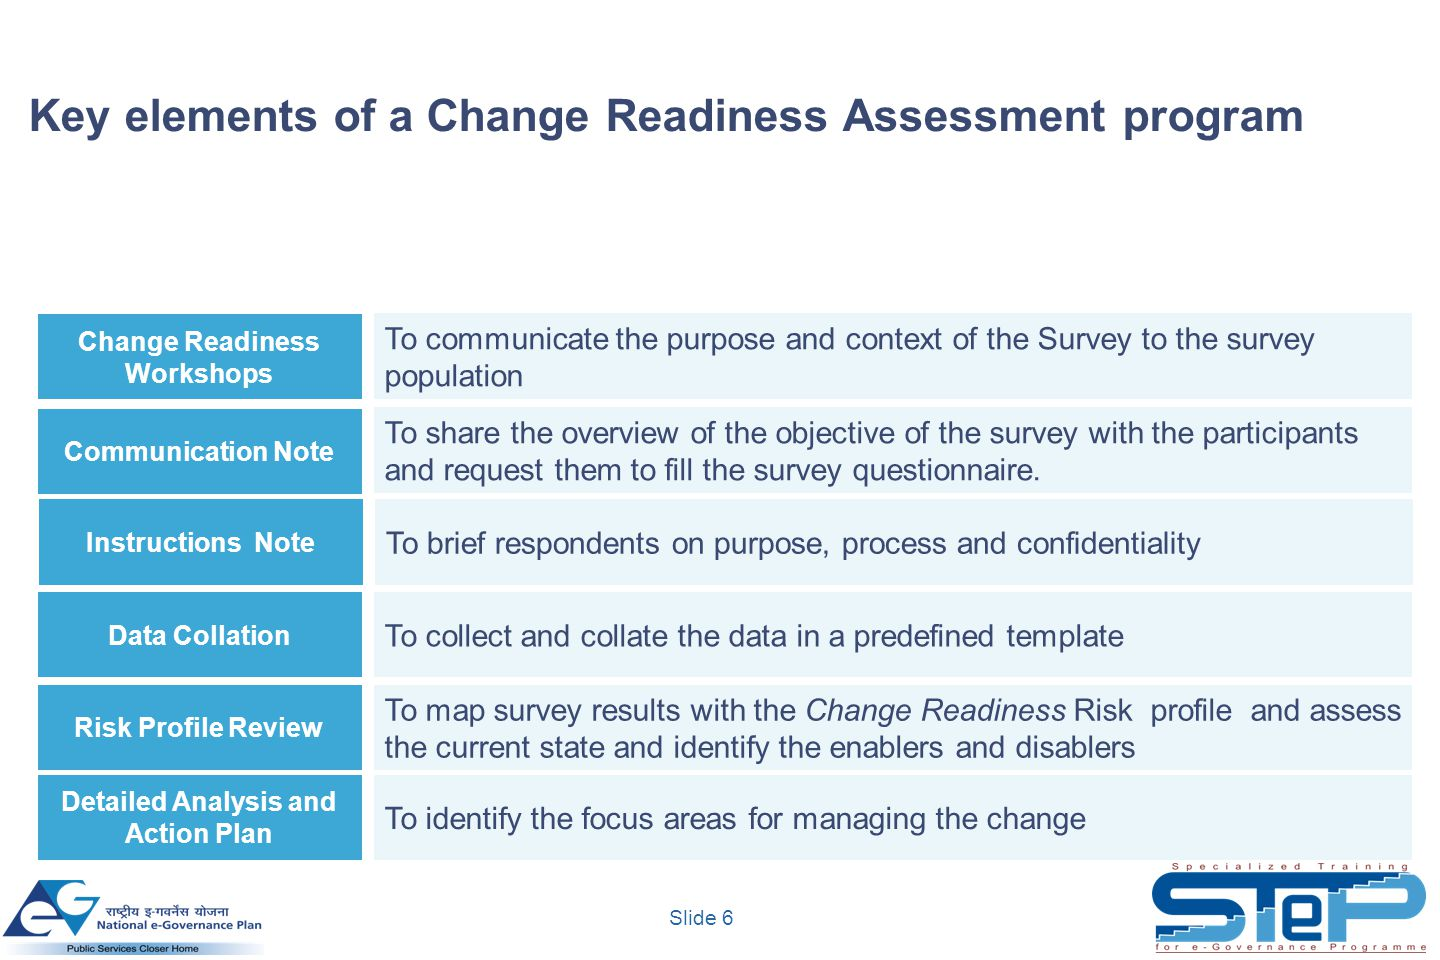 Slide 7 Change readiness workshops aims at sensitizing the employees and other key stakeholders to the change process and gather their perception.